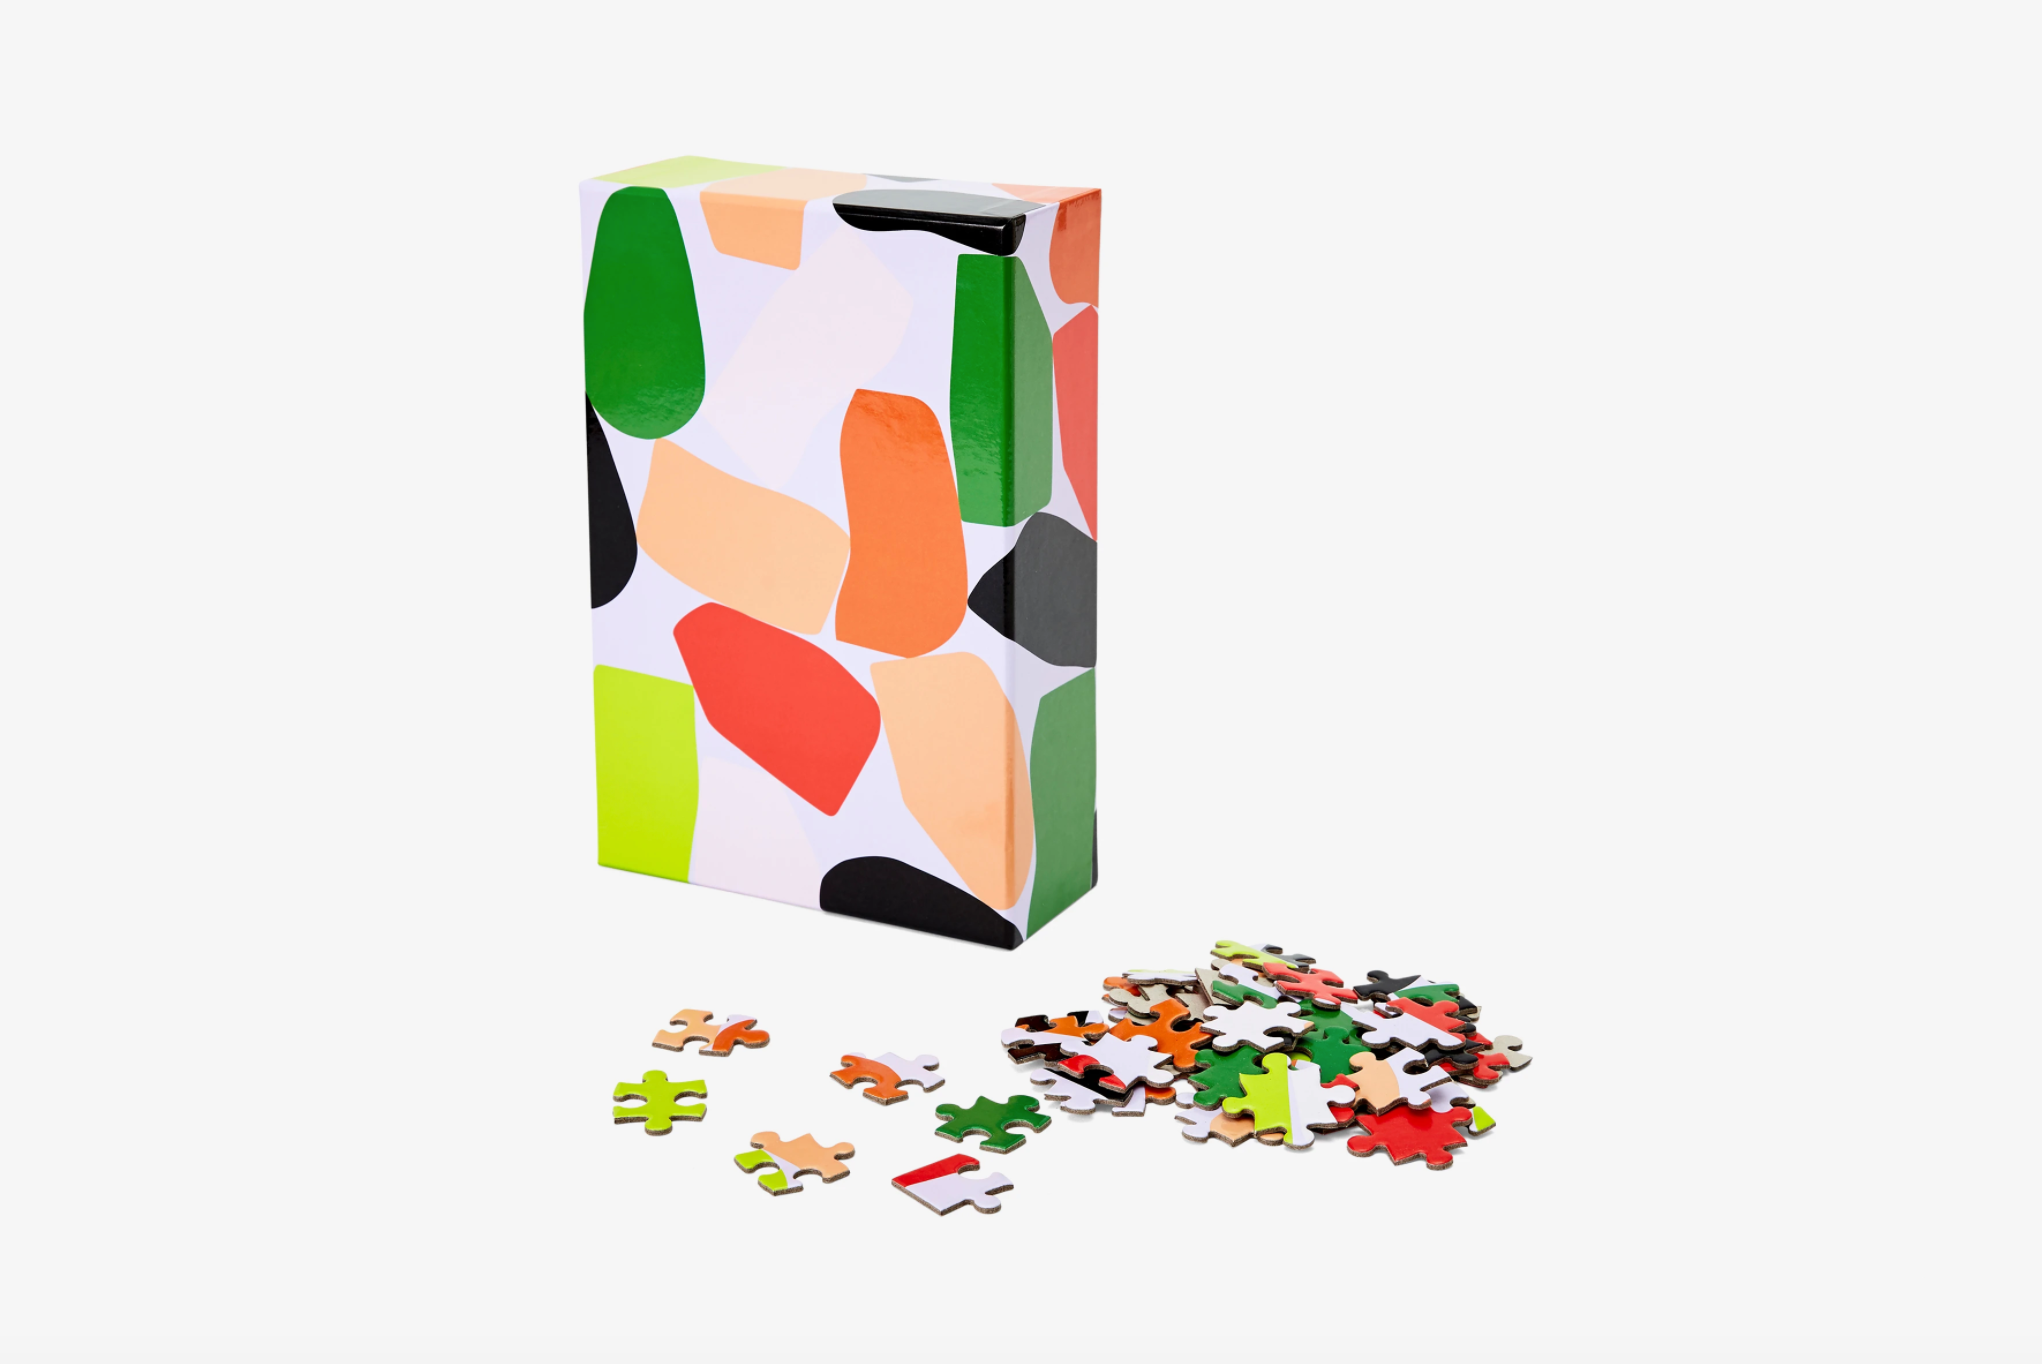 patterned jigsaw puzzle